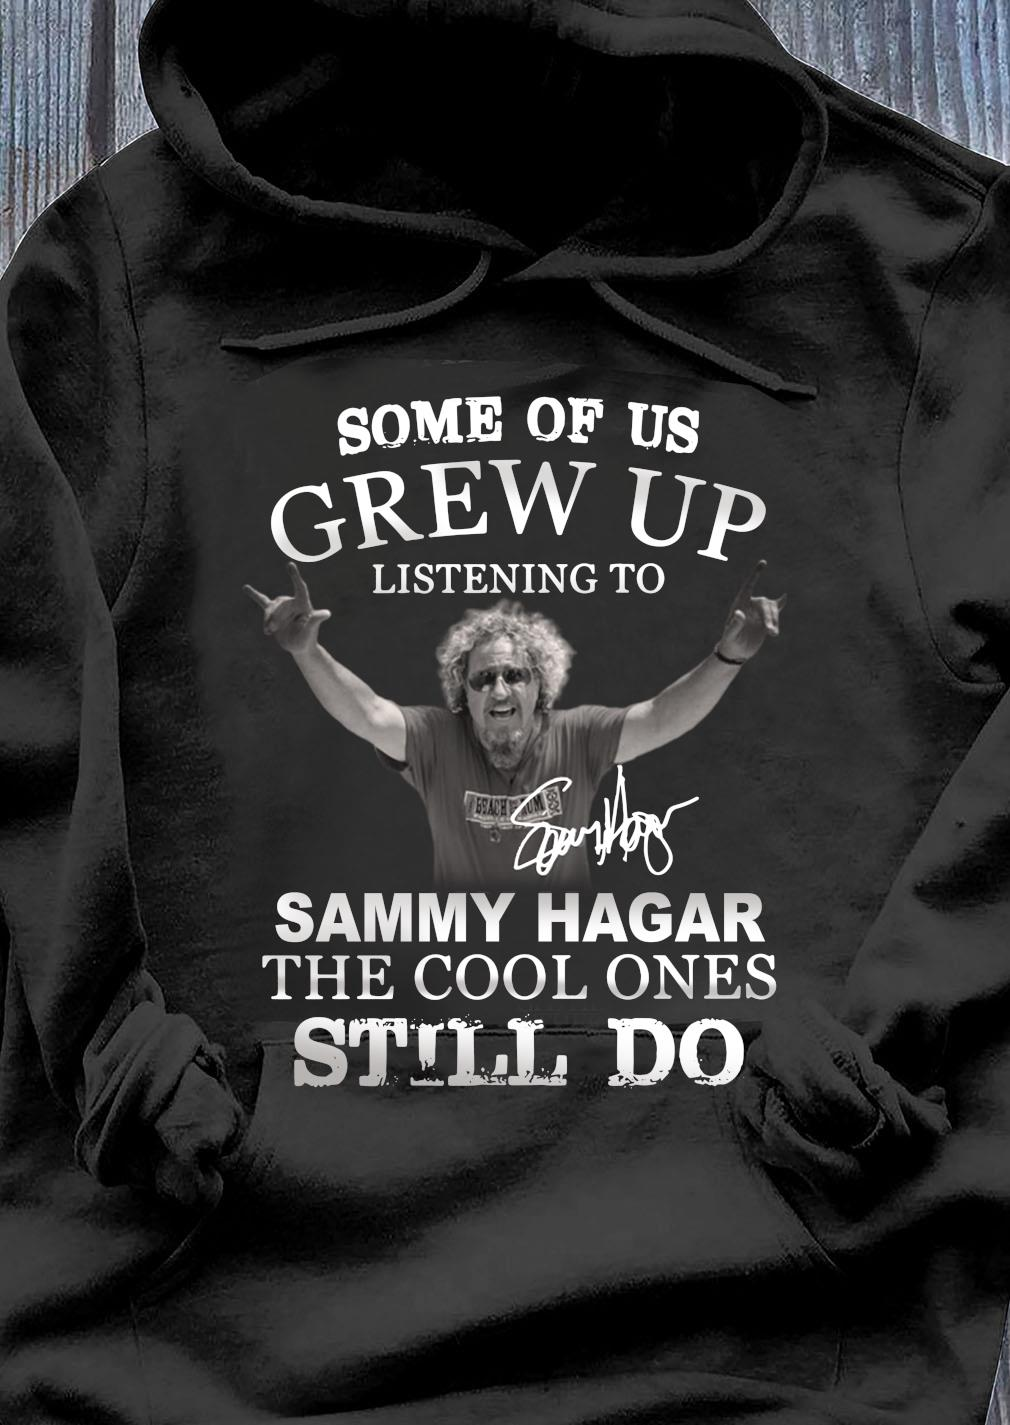 Some Of Us Grew Up Listening To Sammy Hagar The Cool Ones Still Do Signature Shirt Hoodie